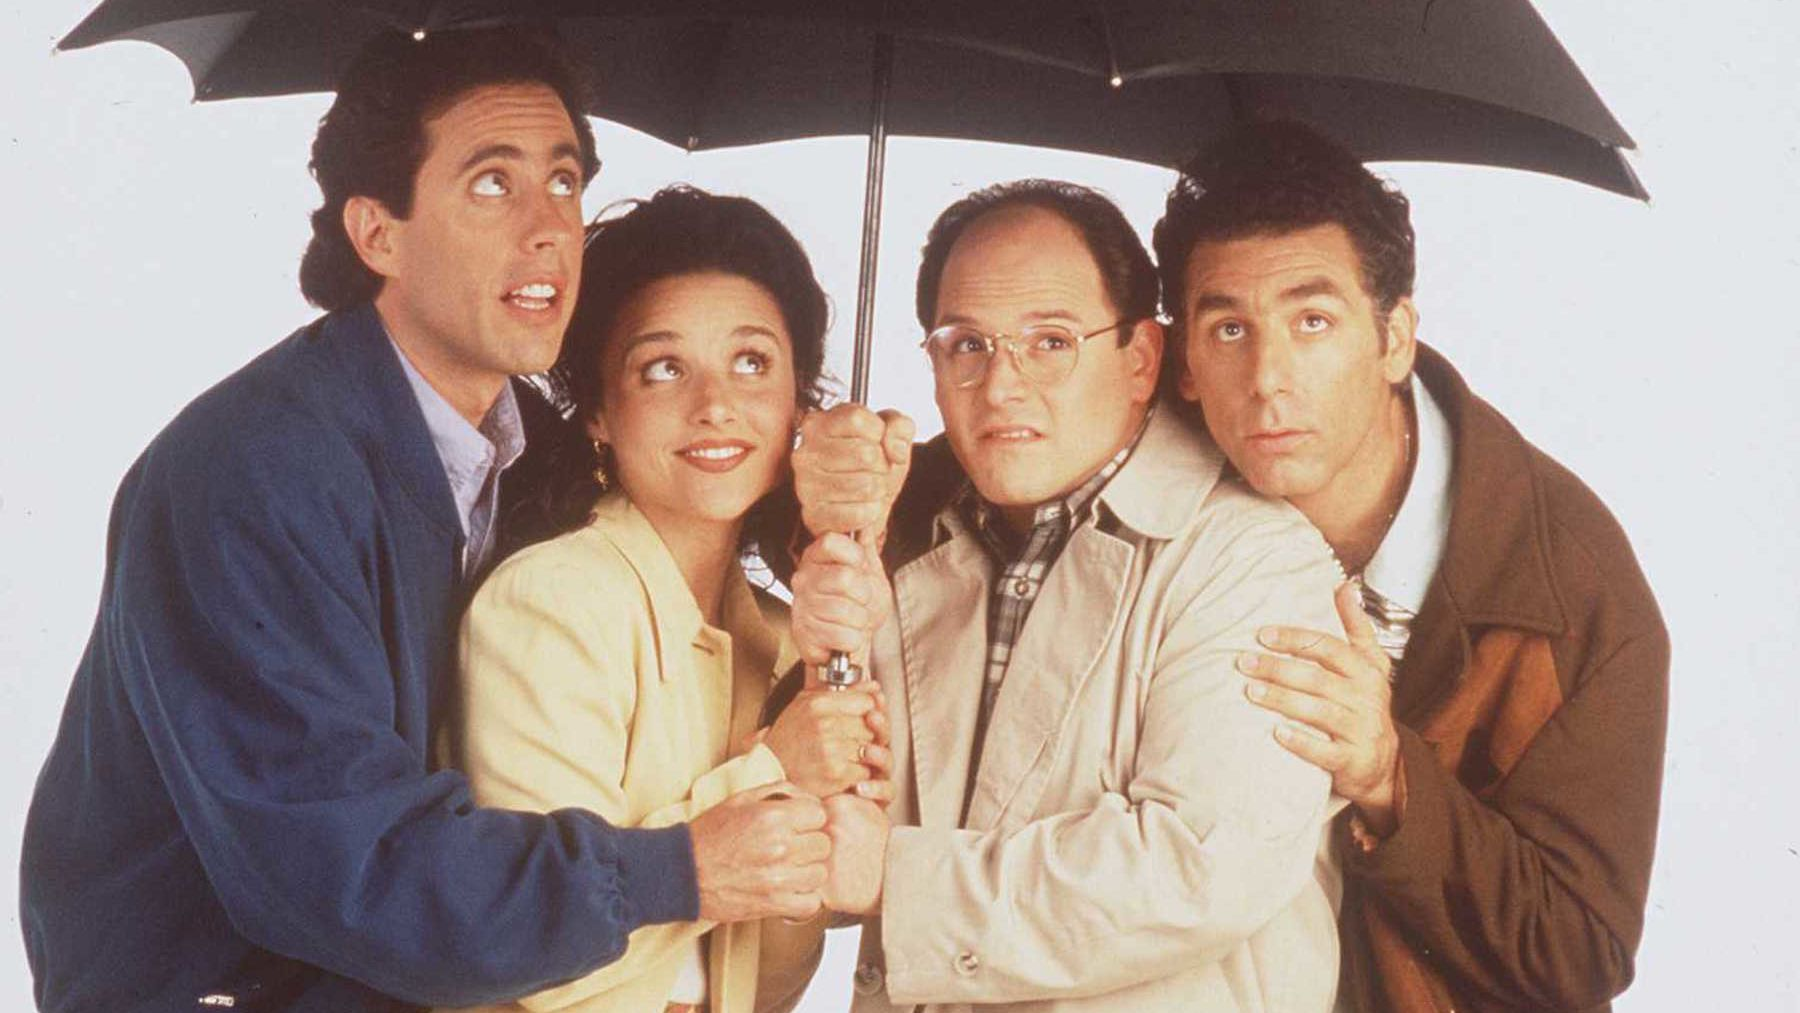 41 Fascinating Facts About Seinfeld